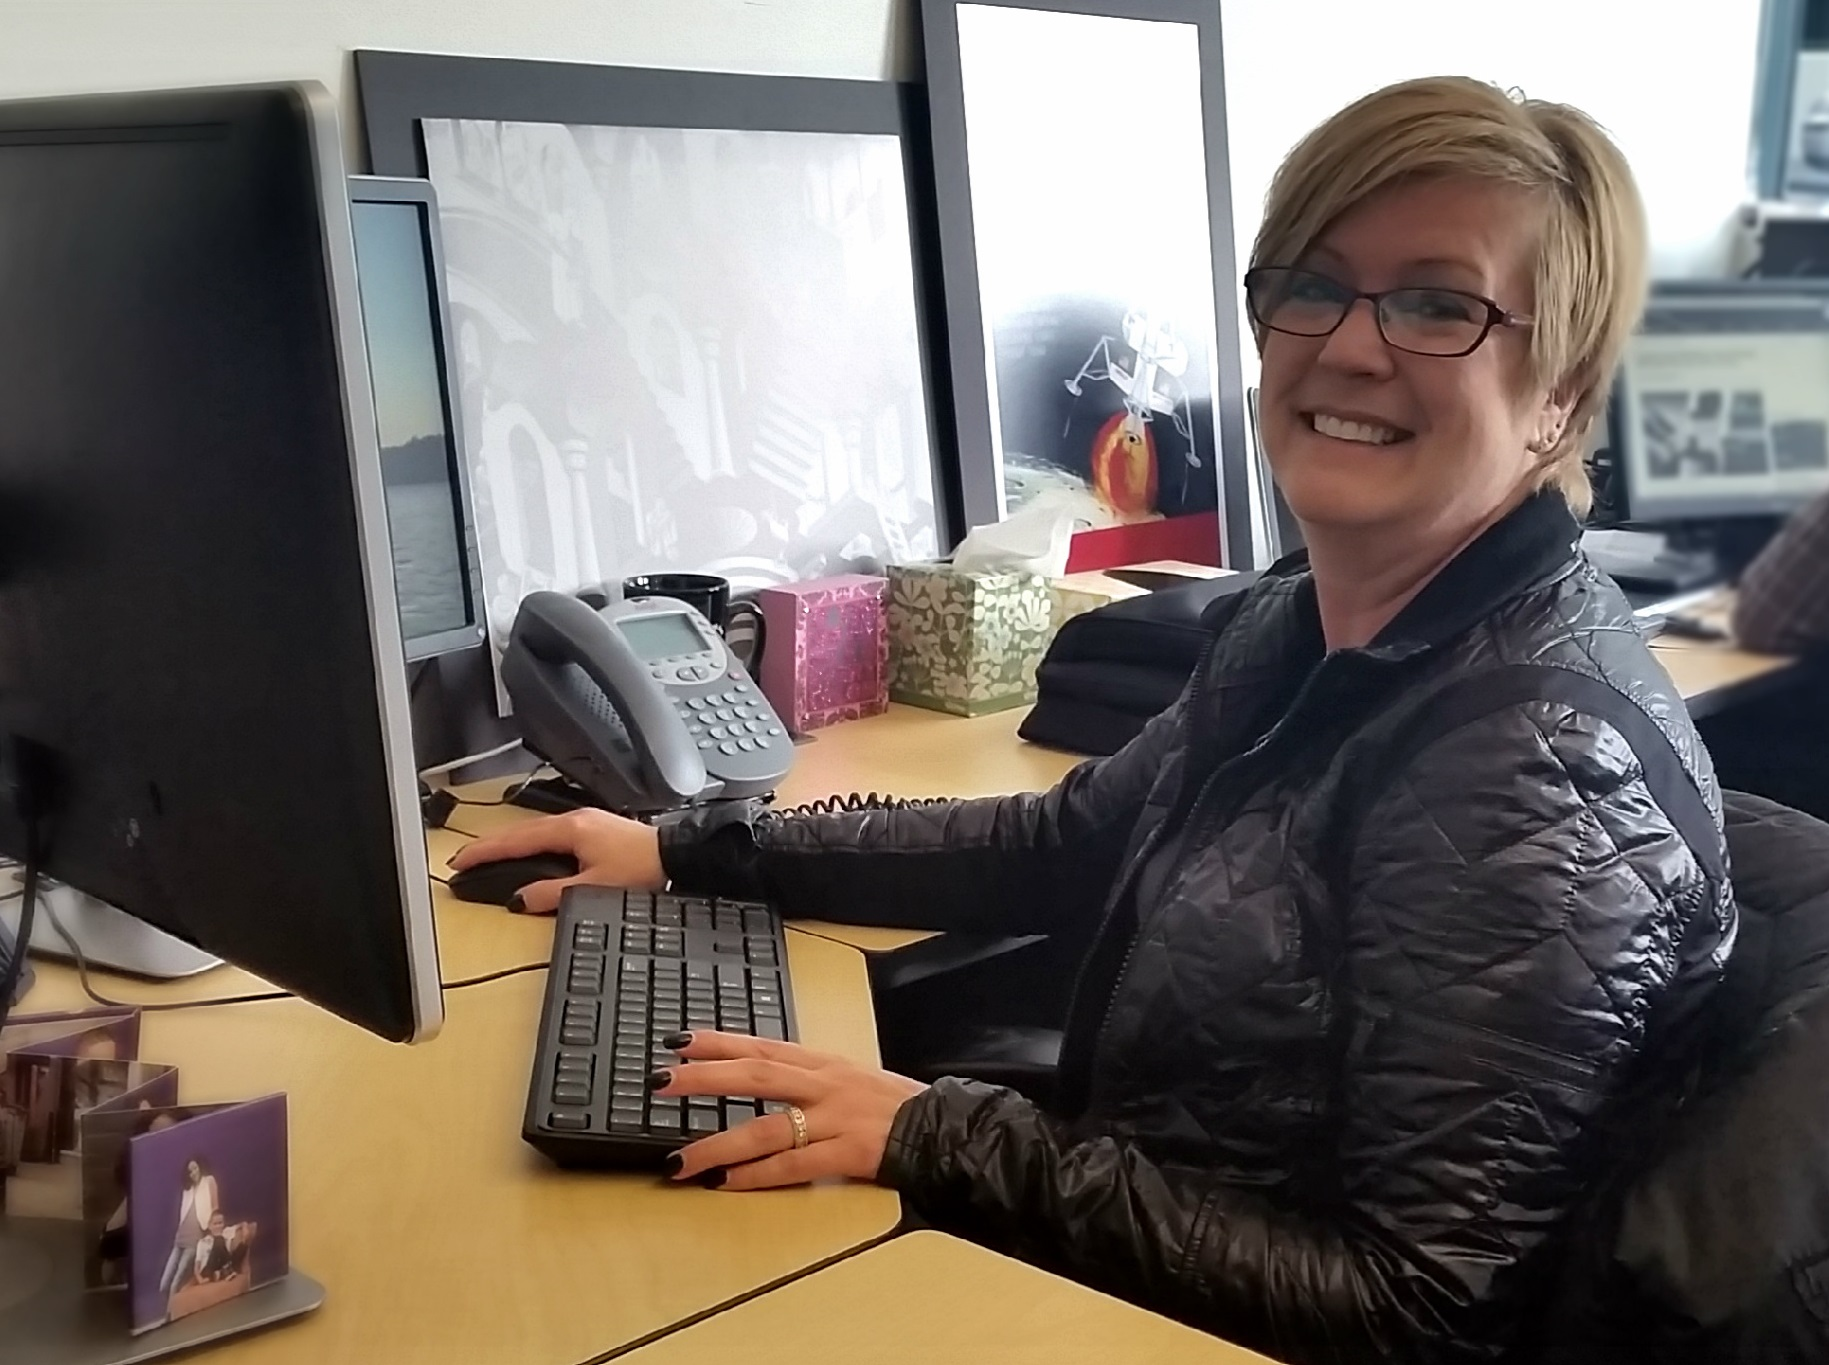 Meet Judi Baker – our Service Desk Manager